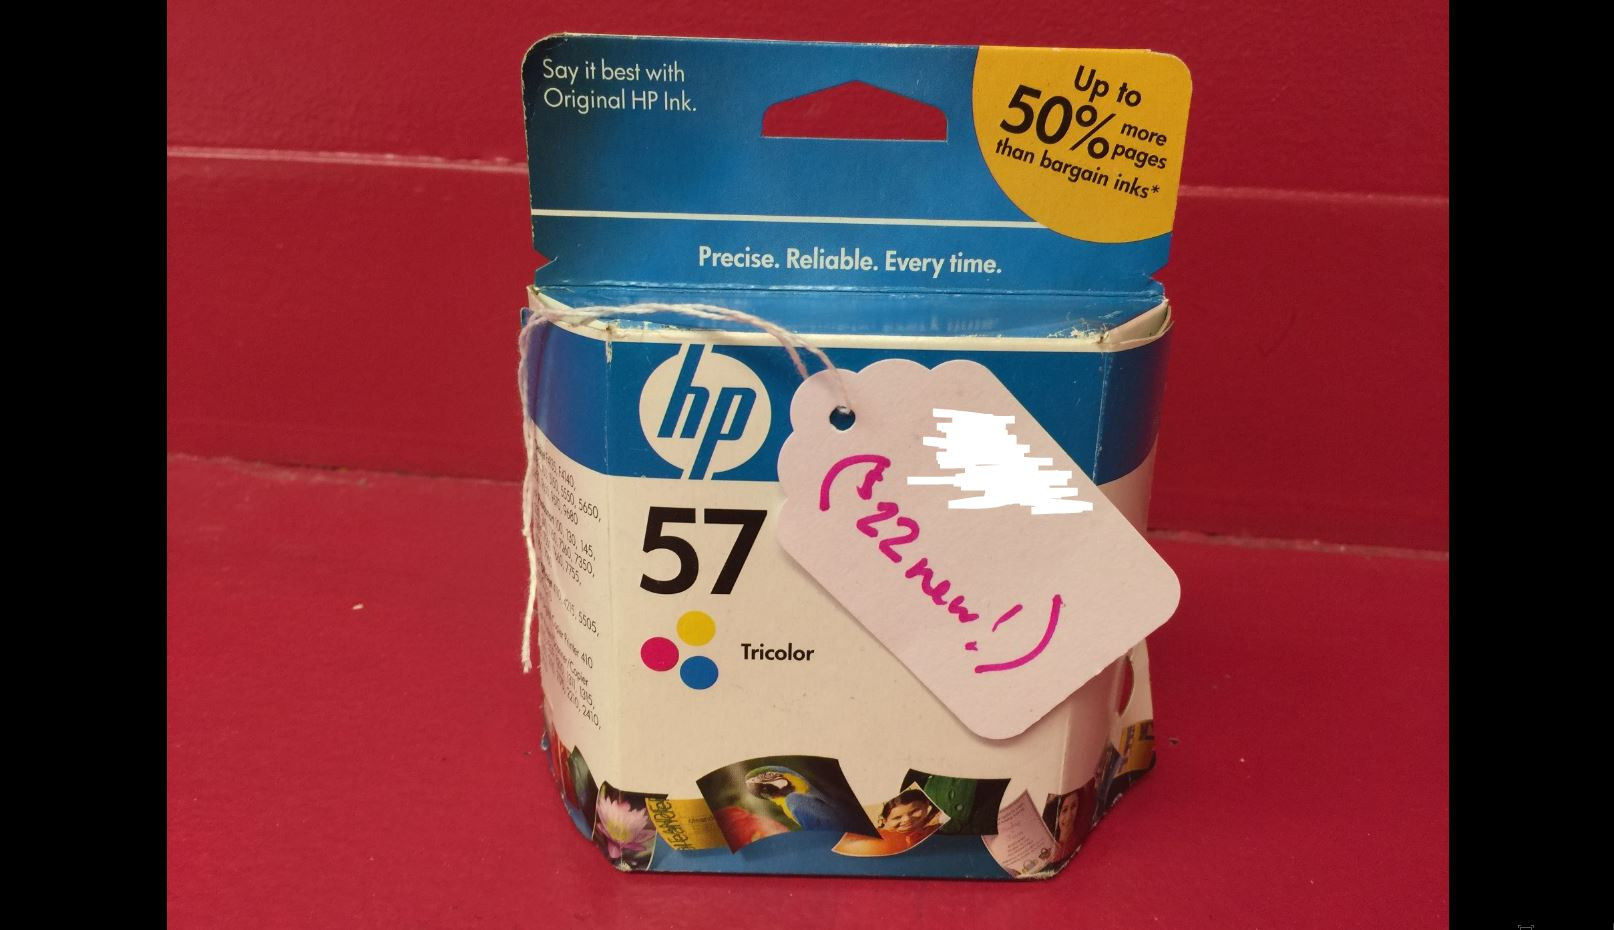 HP 57 Tri-color Printer ink